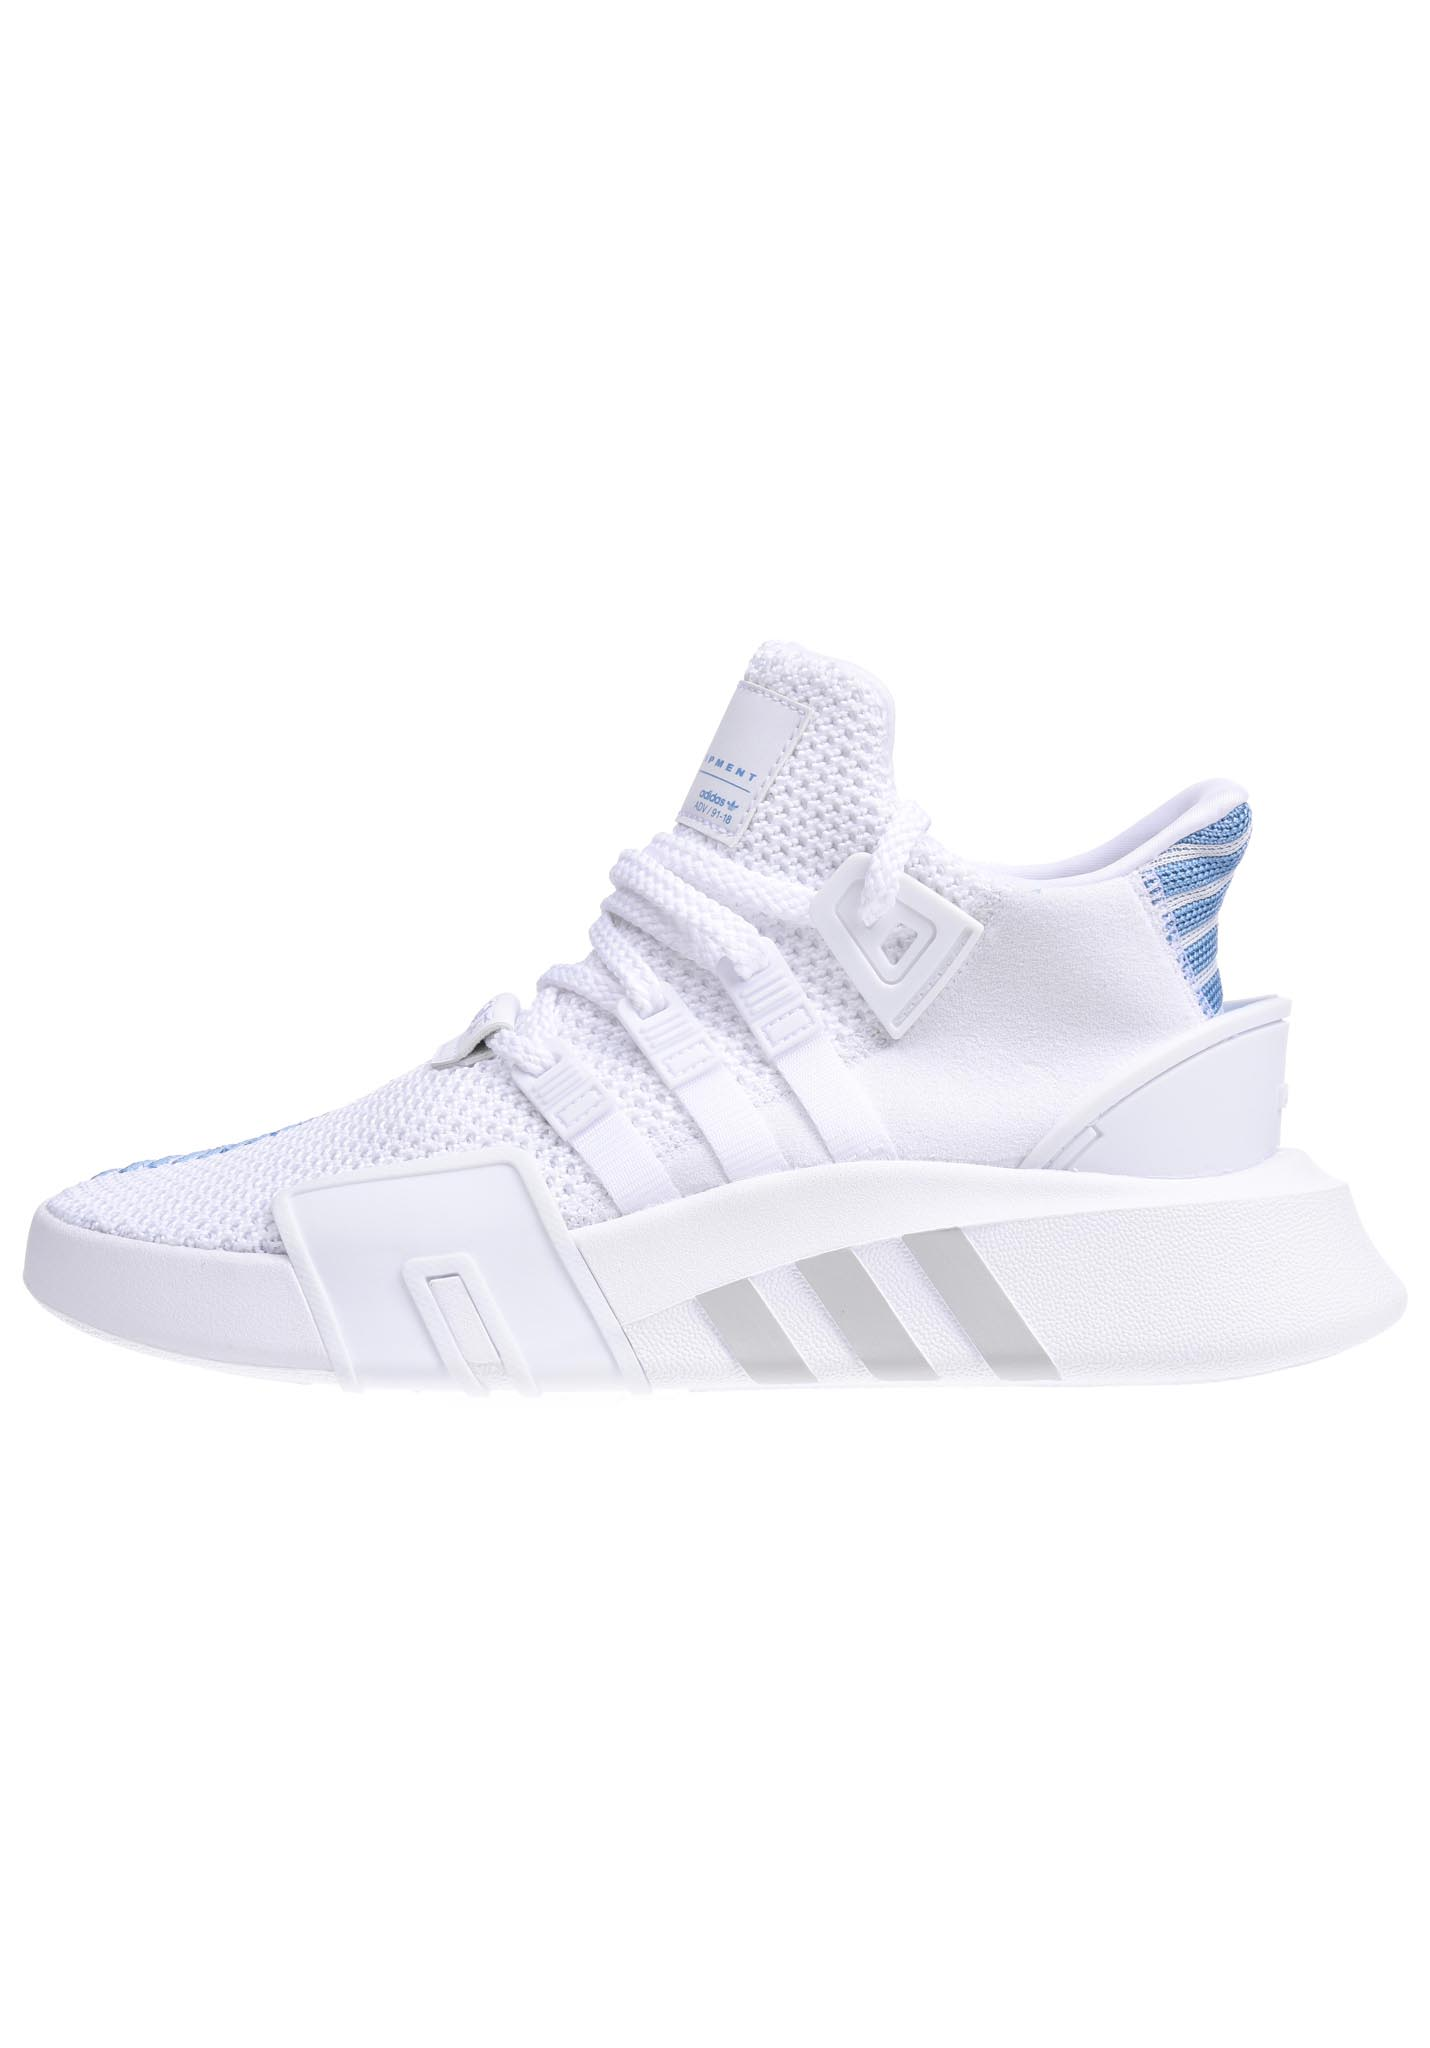 size 40 d5b2f 58872 ADIDAS ORIGINALS Eqt Bask Adv - Sneakers for Women - White - Planet Sports